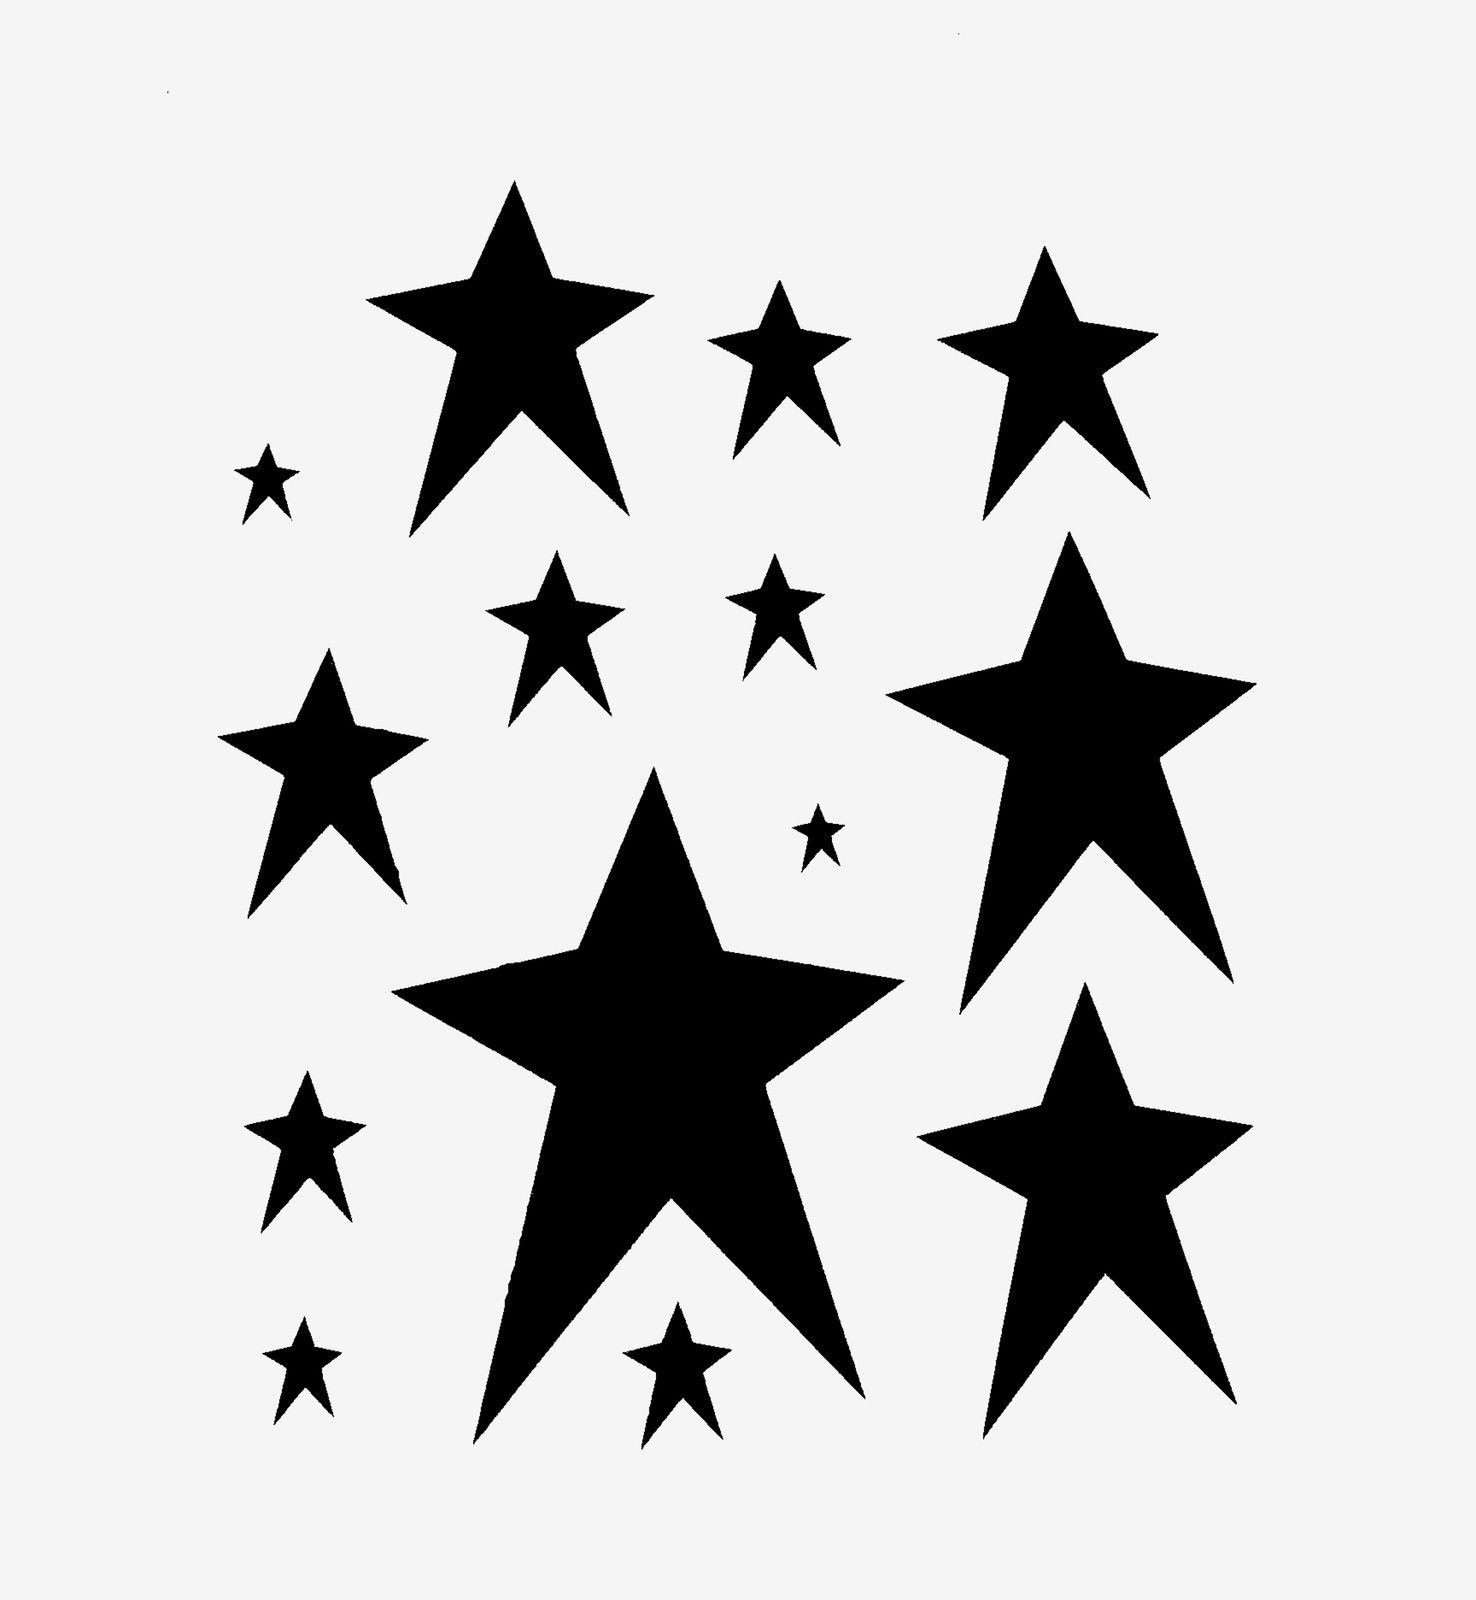 PRIMITIVE STAR STENCIL MANY STARS STENCILS CELESTIAL CRAFT TEMPLATE 8 X 10 NEW Picclick